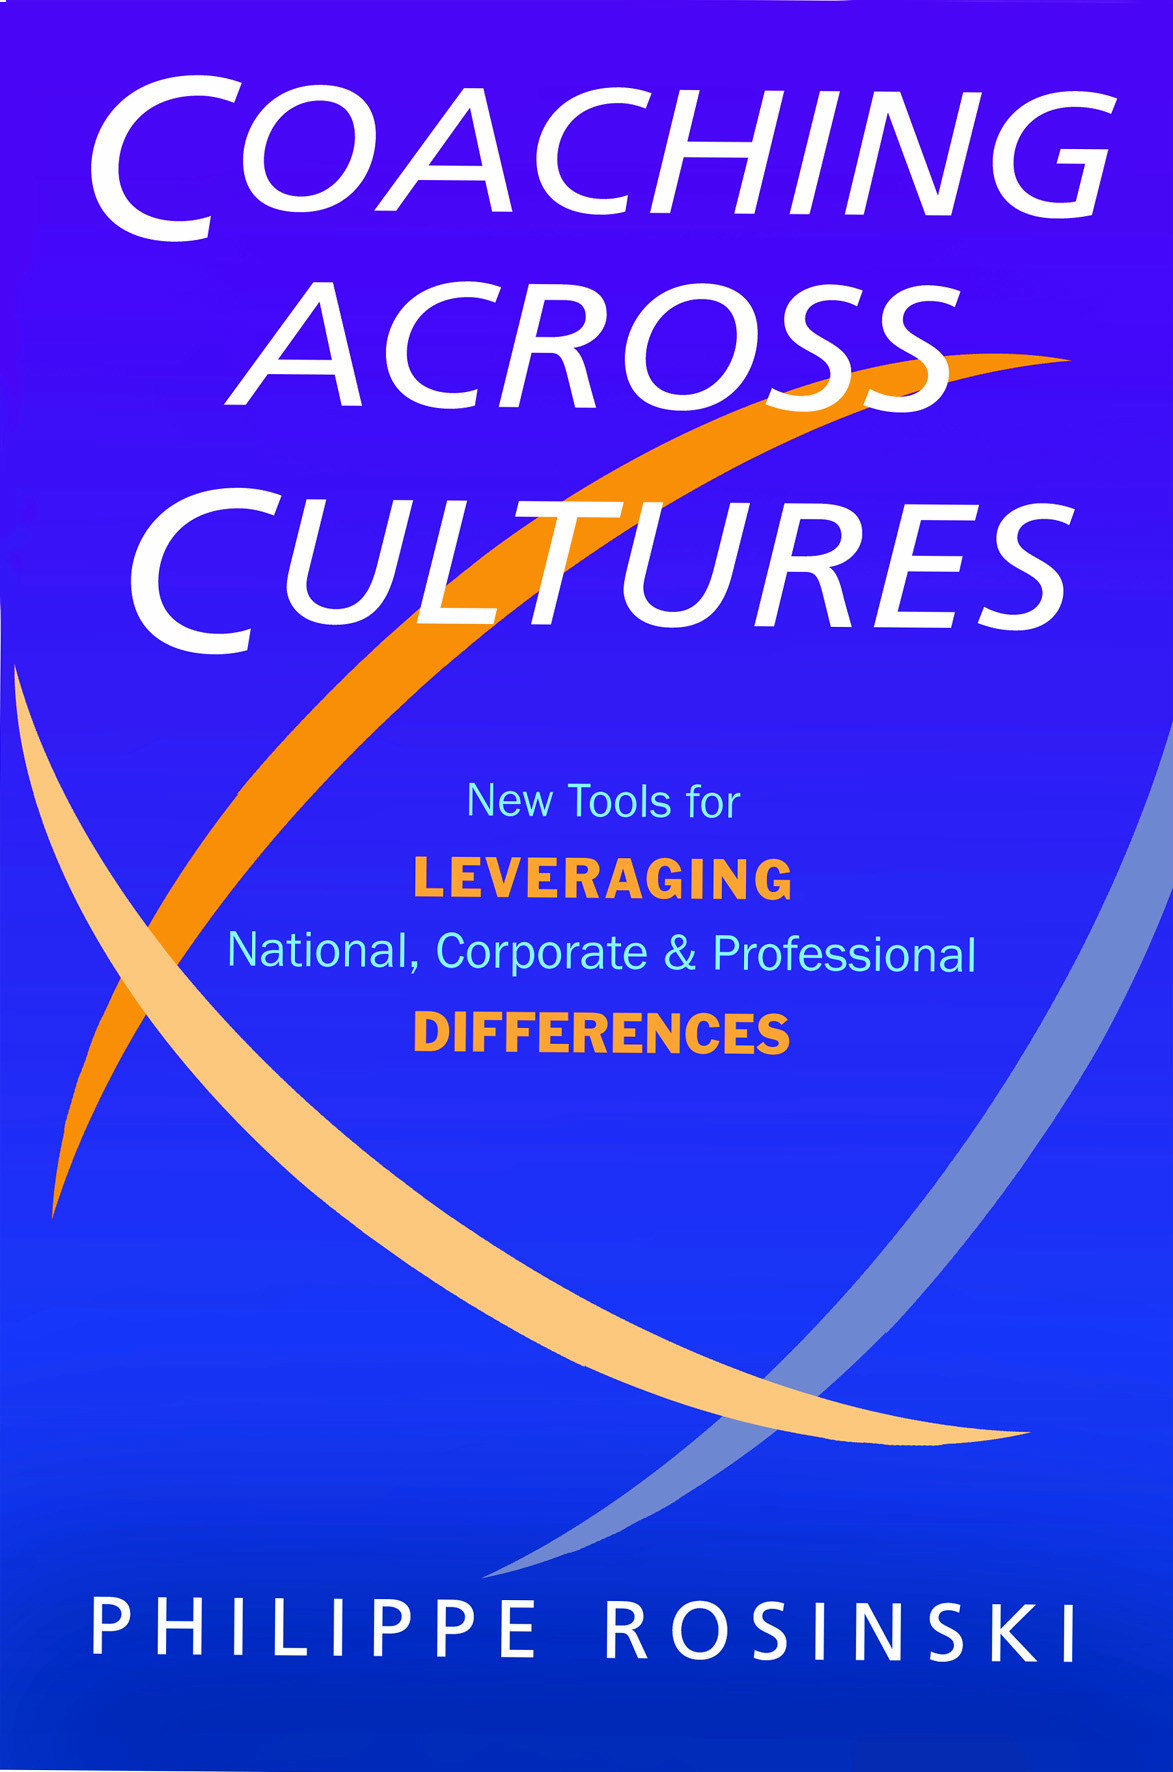 Coaching Across Cultures hi-res.jpg